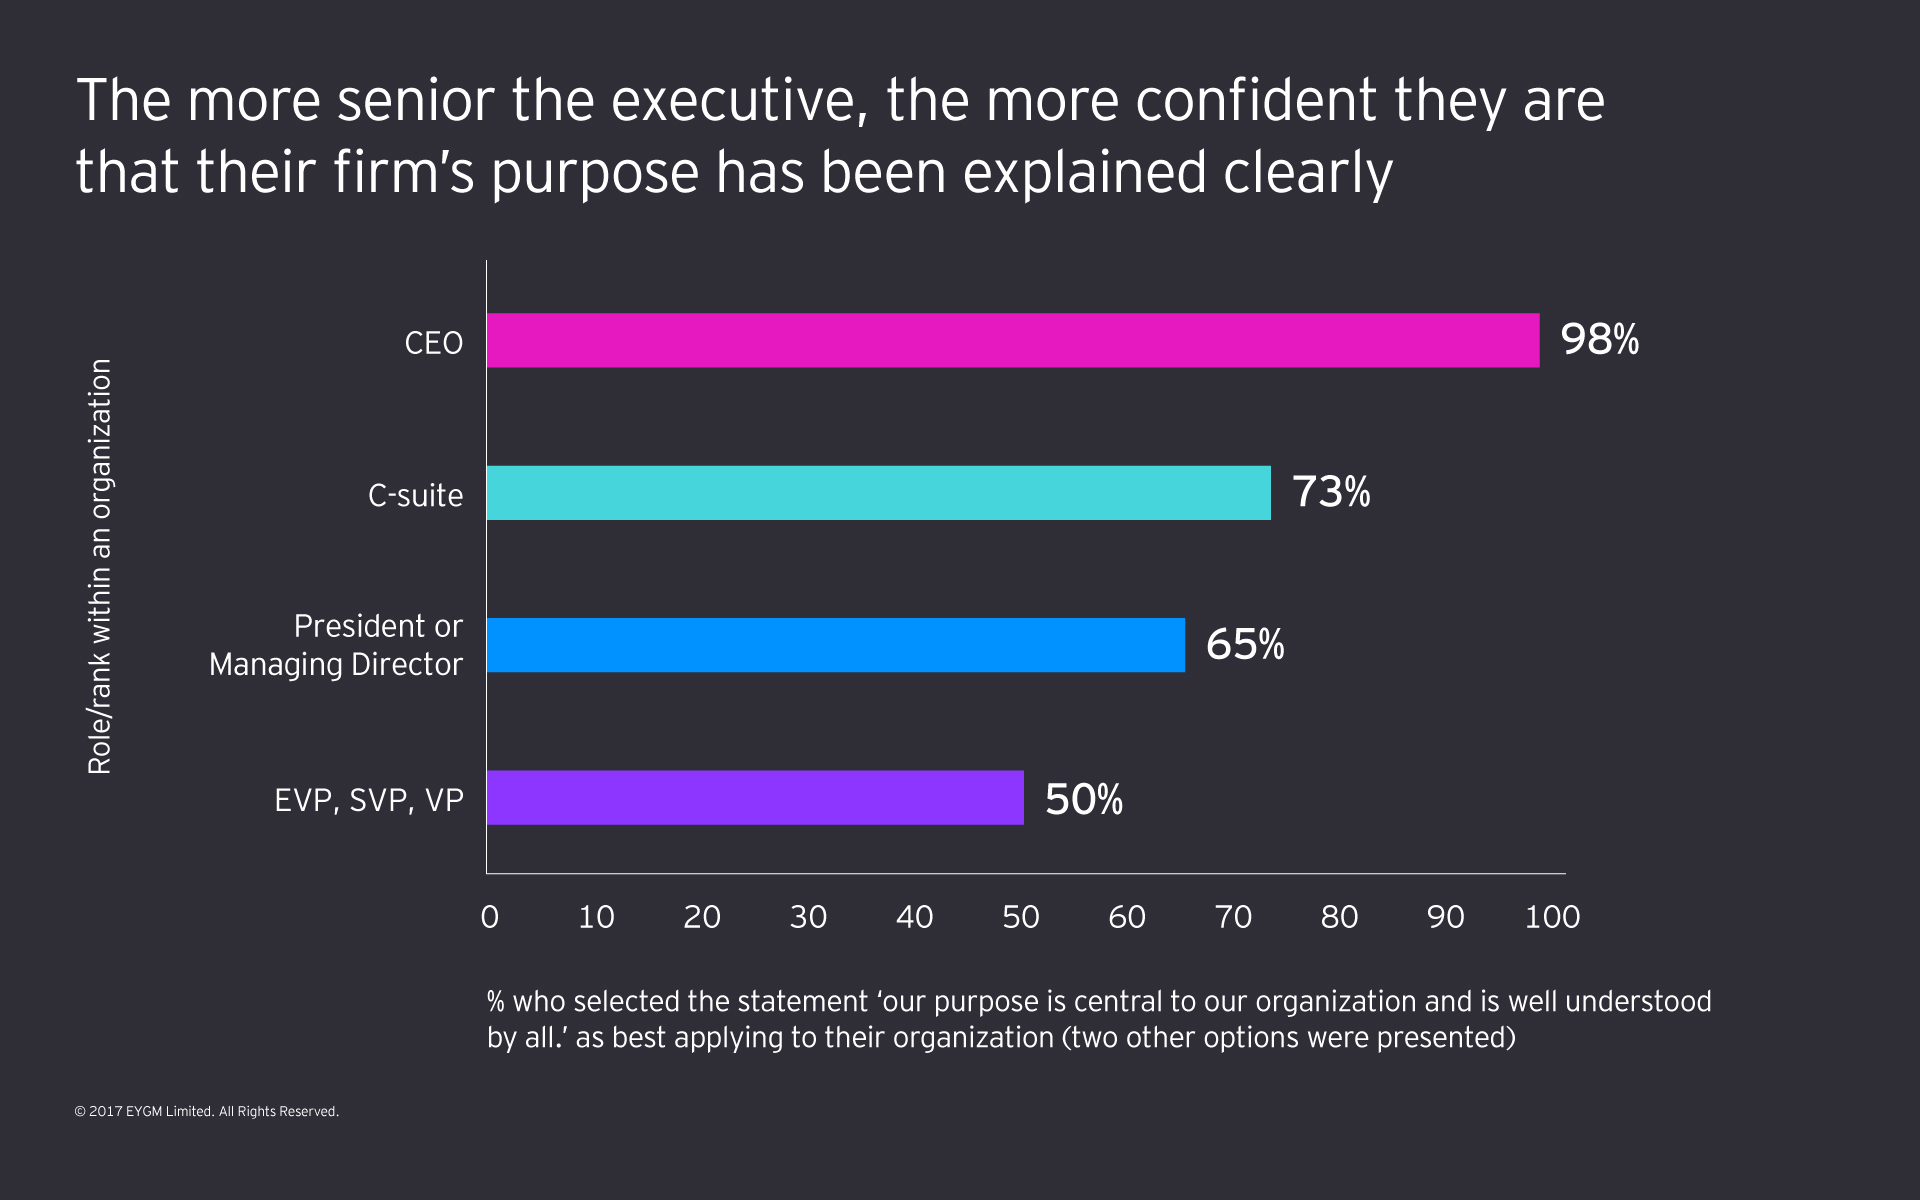 Graph showing that the more senior an executive is, the more confident they are that their firm's purpose has been explained clearly.